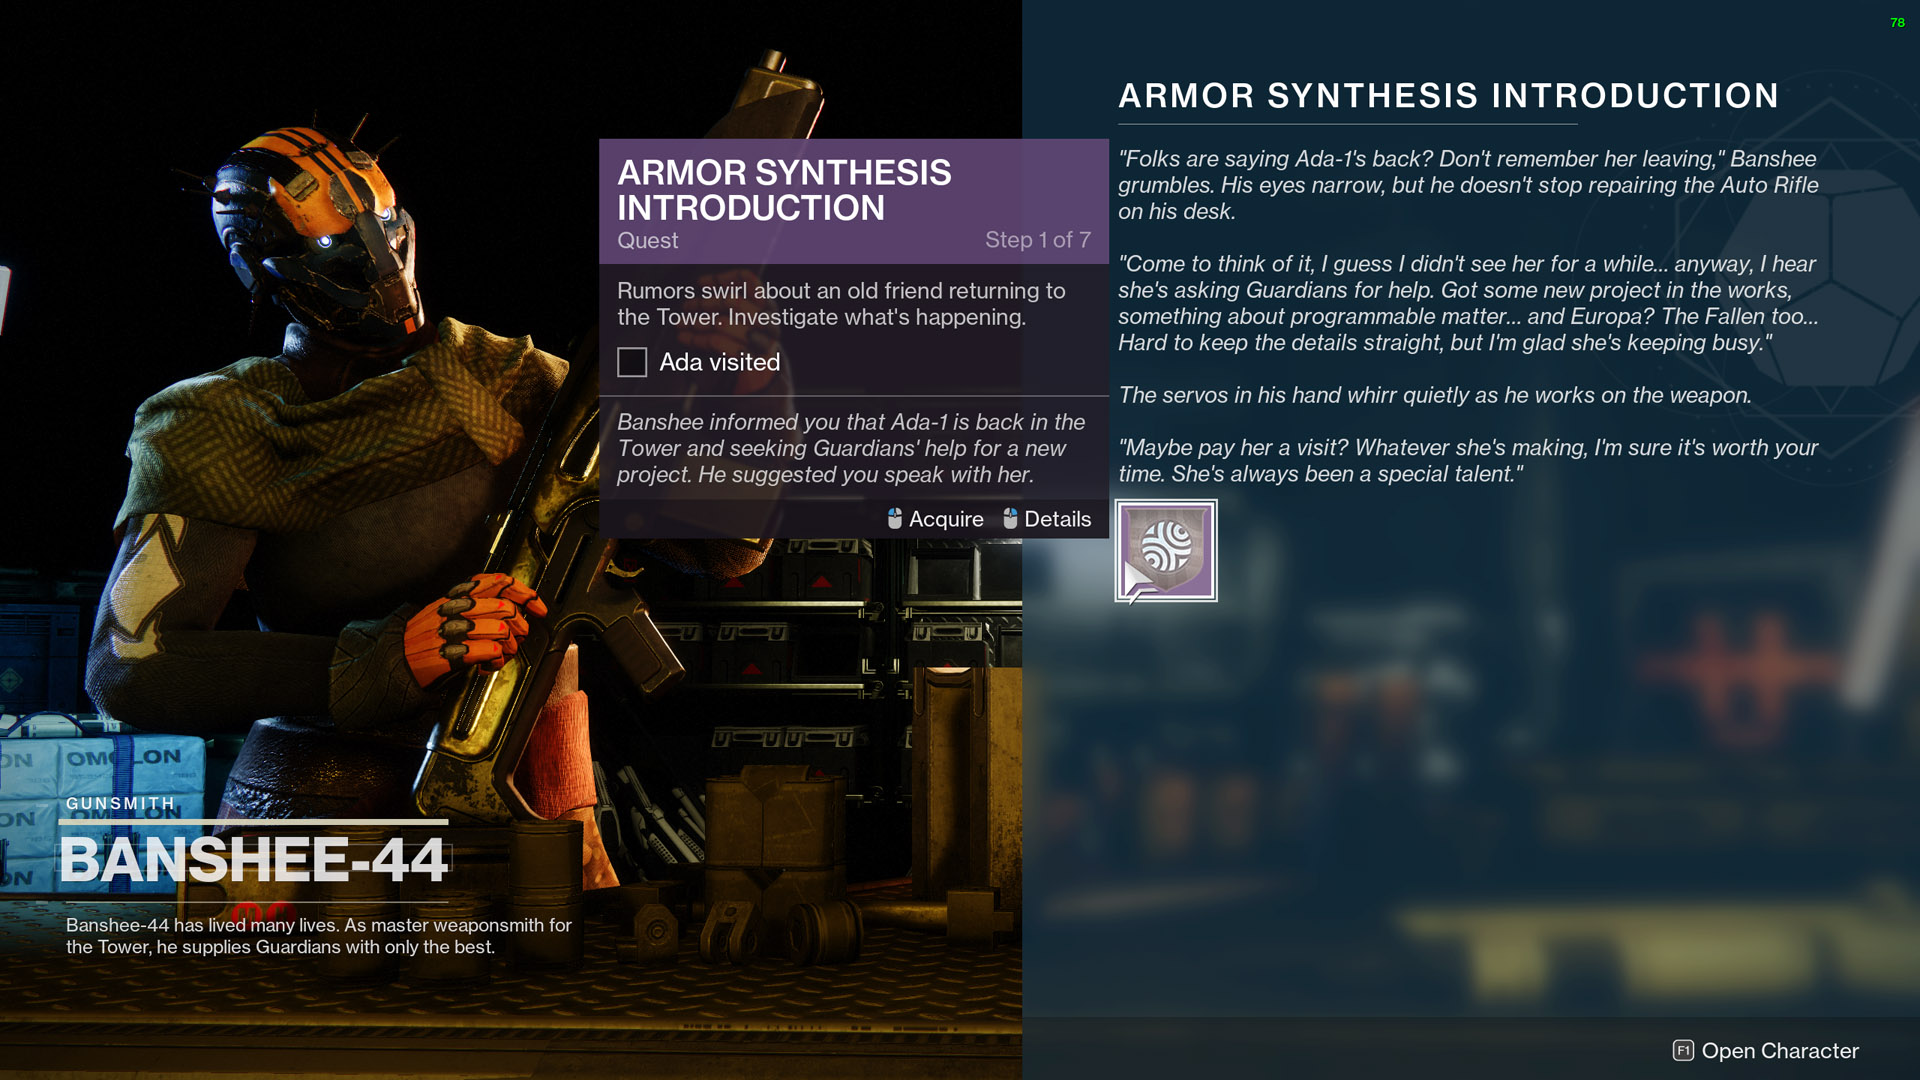 destiny 2 armor synthesis introduction